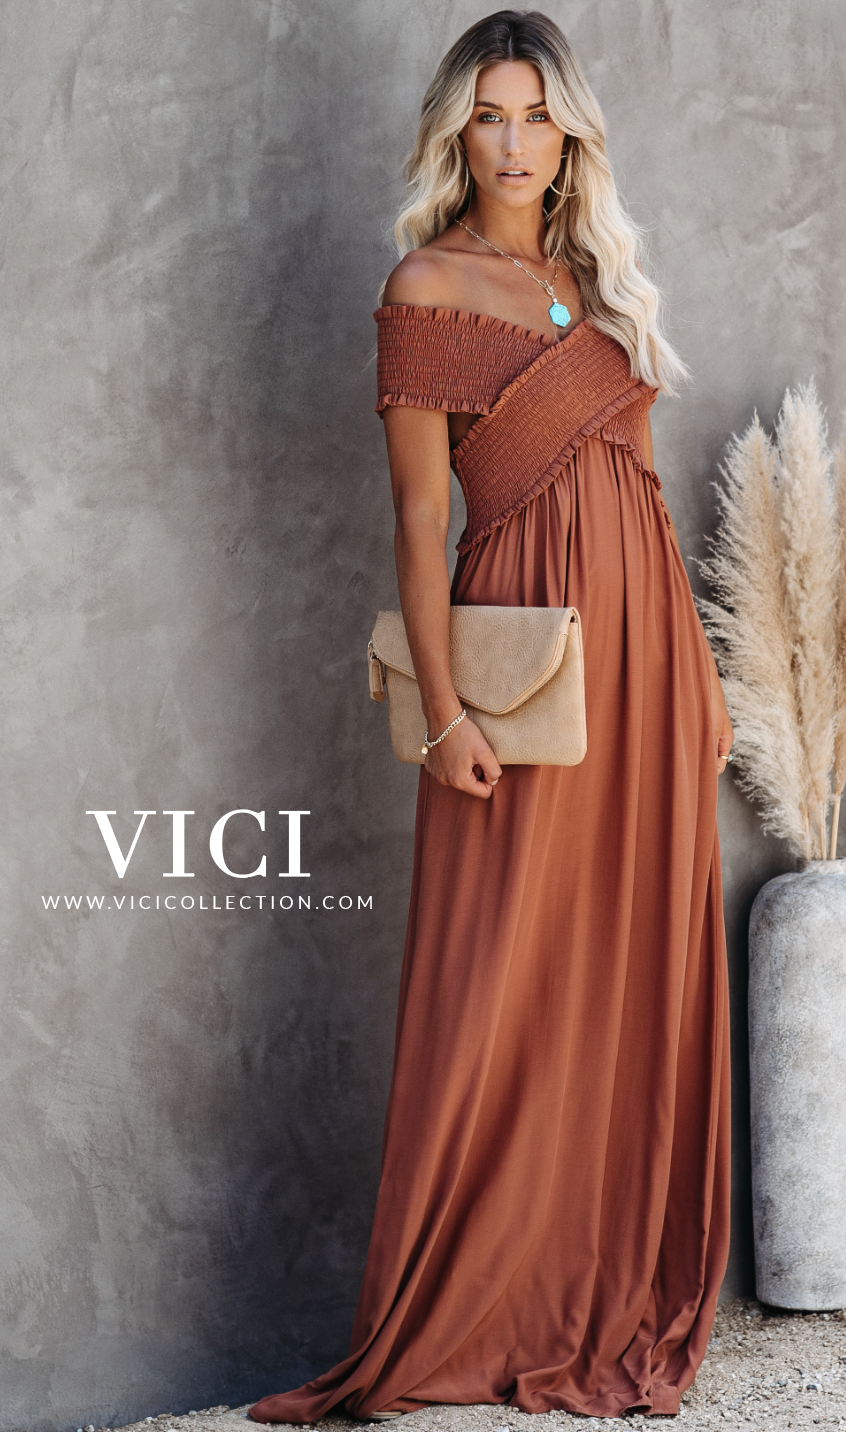 Shop Vici Daily New Arrivals That Embody Everything Chic On Trend Www Vicicollection Com Vici Dress Maxi Dress Shoulder Maxi Dress [ 1432 x 846 Pixel ]